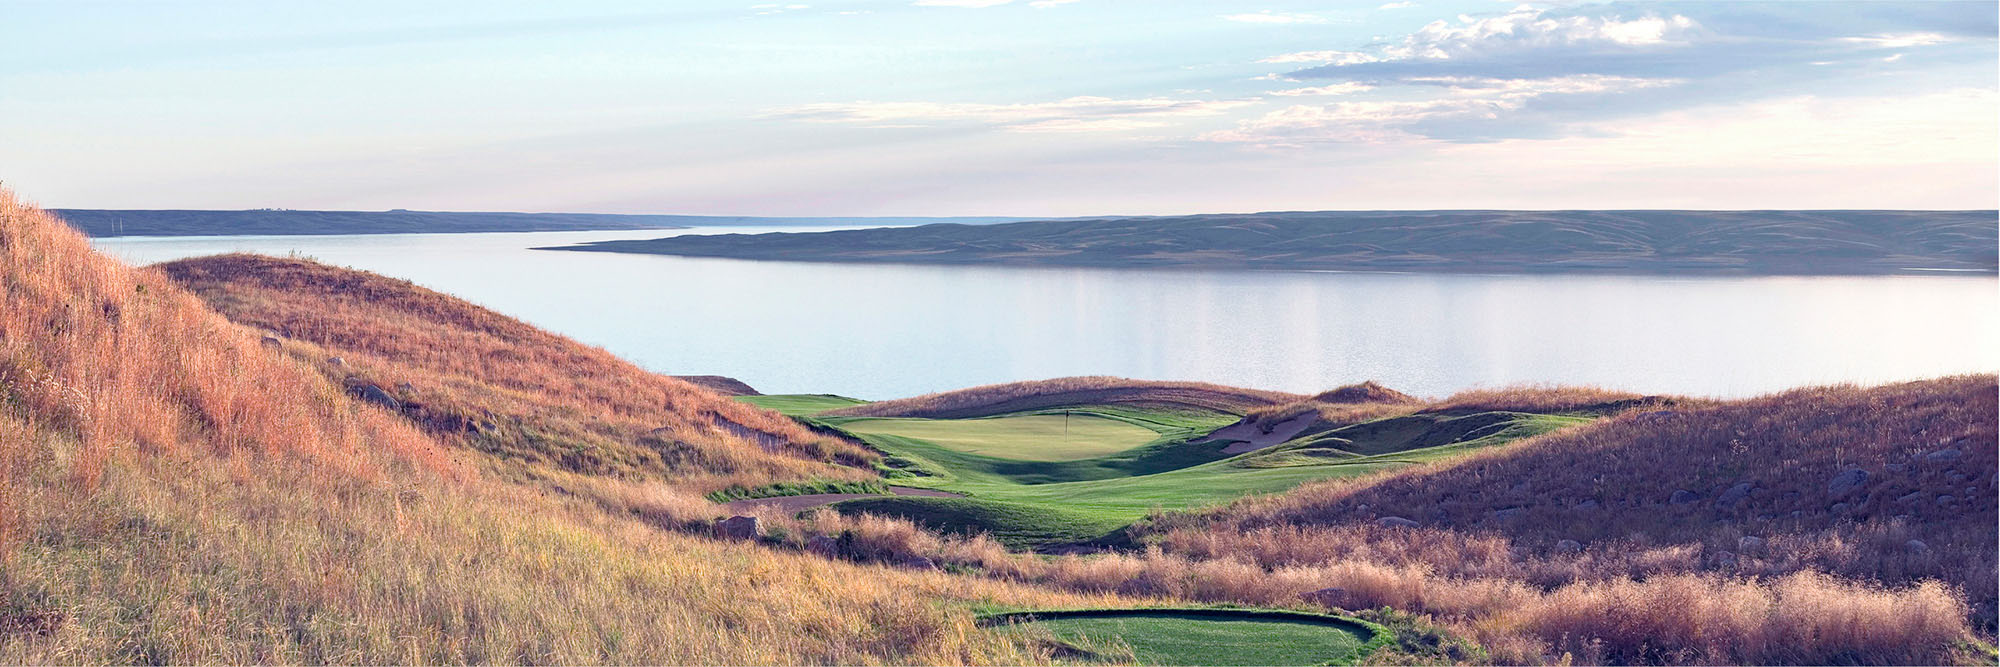 Golf Course Image - Sutton Bay No. 13